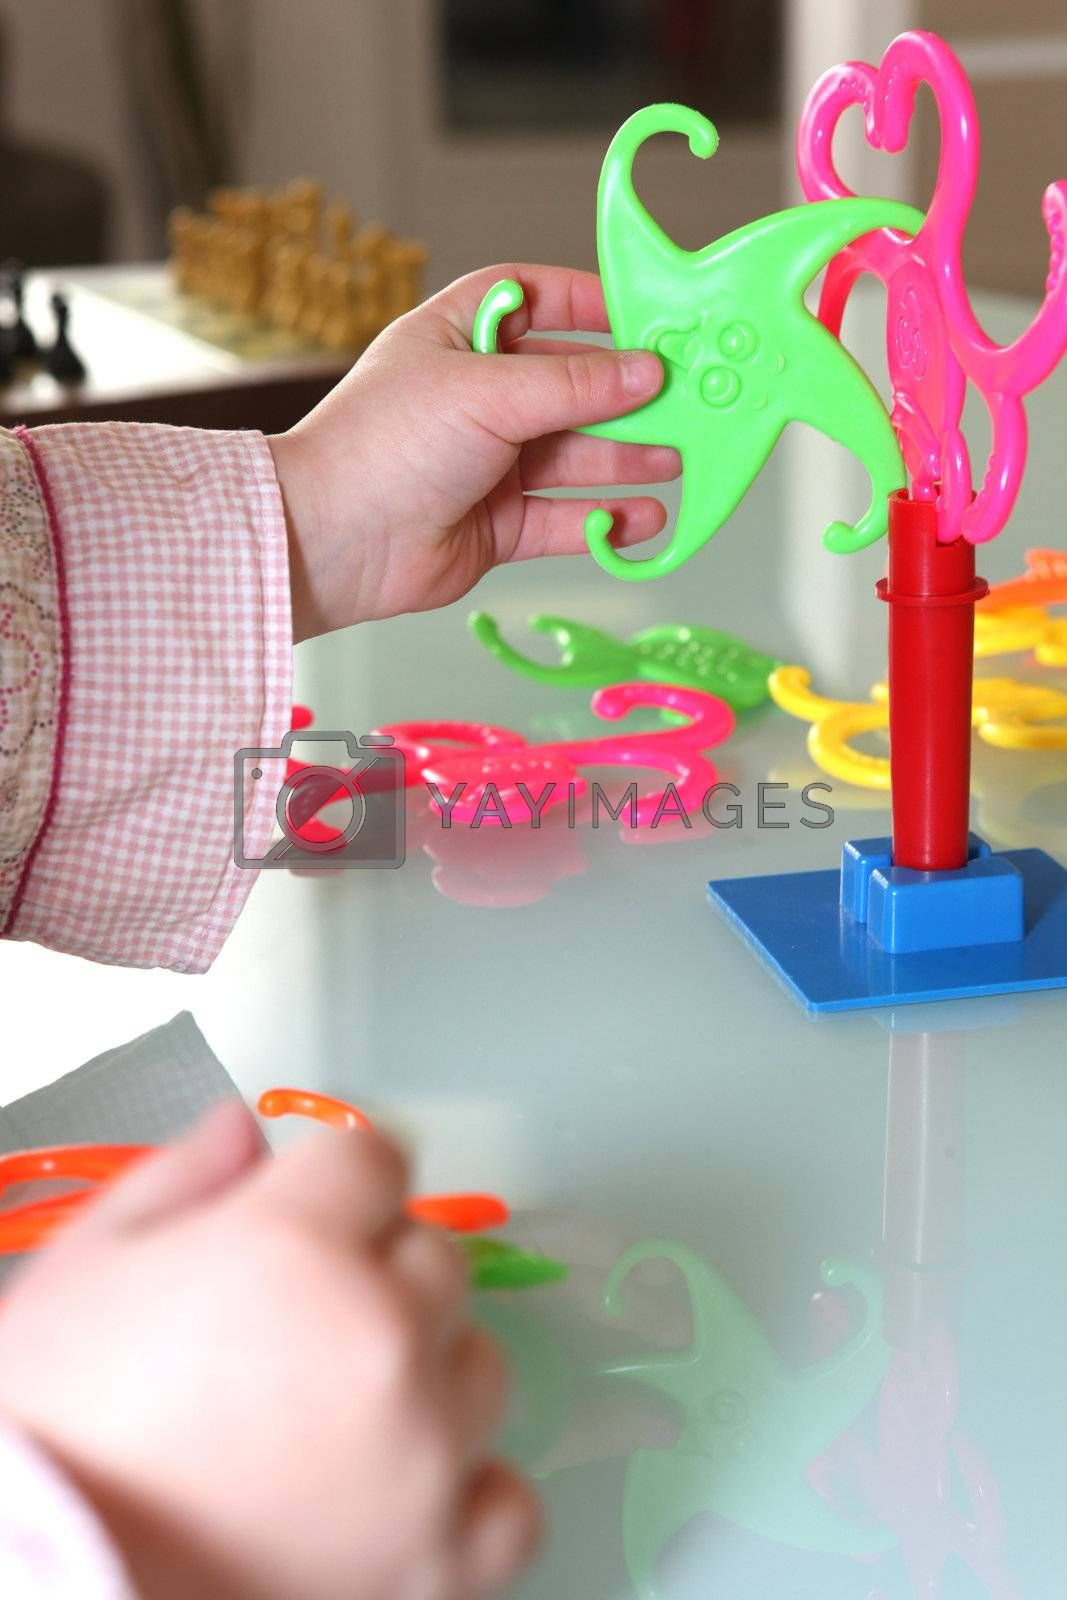 Toddler playing with plastic game